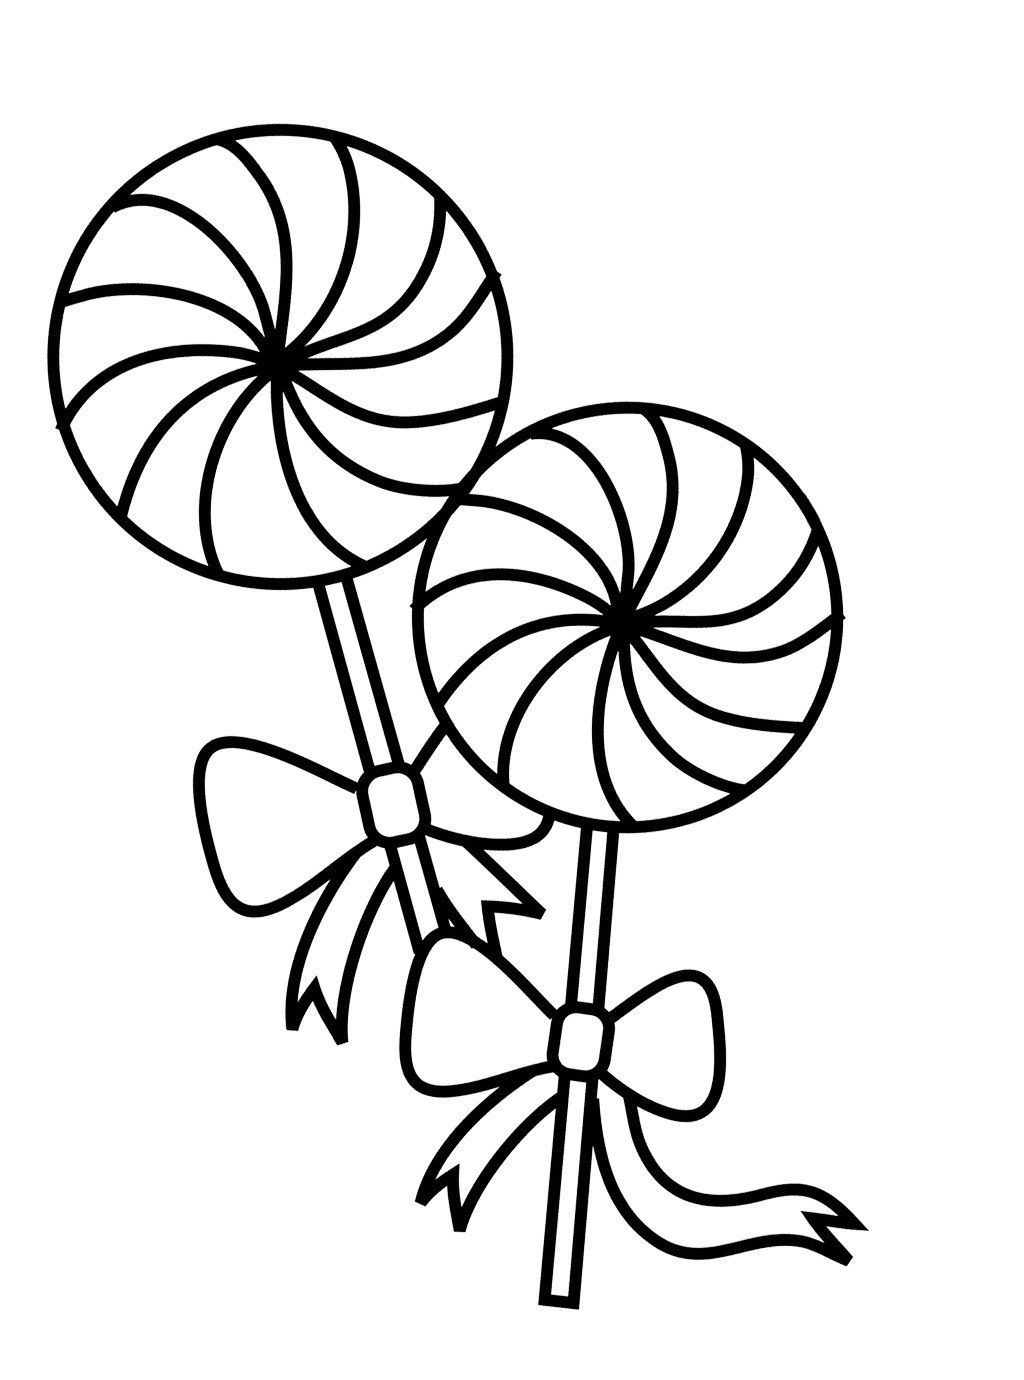 - Lollipop Coloring Page Simple Candy Coloring Pages, Coloring